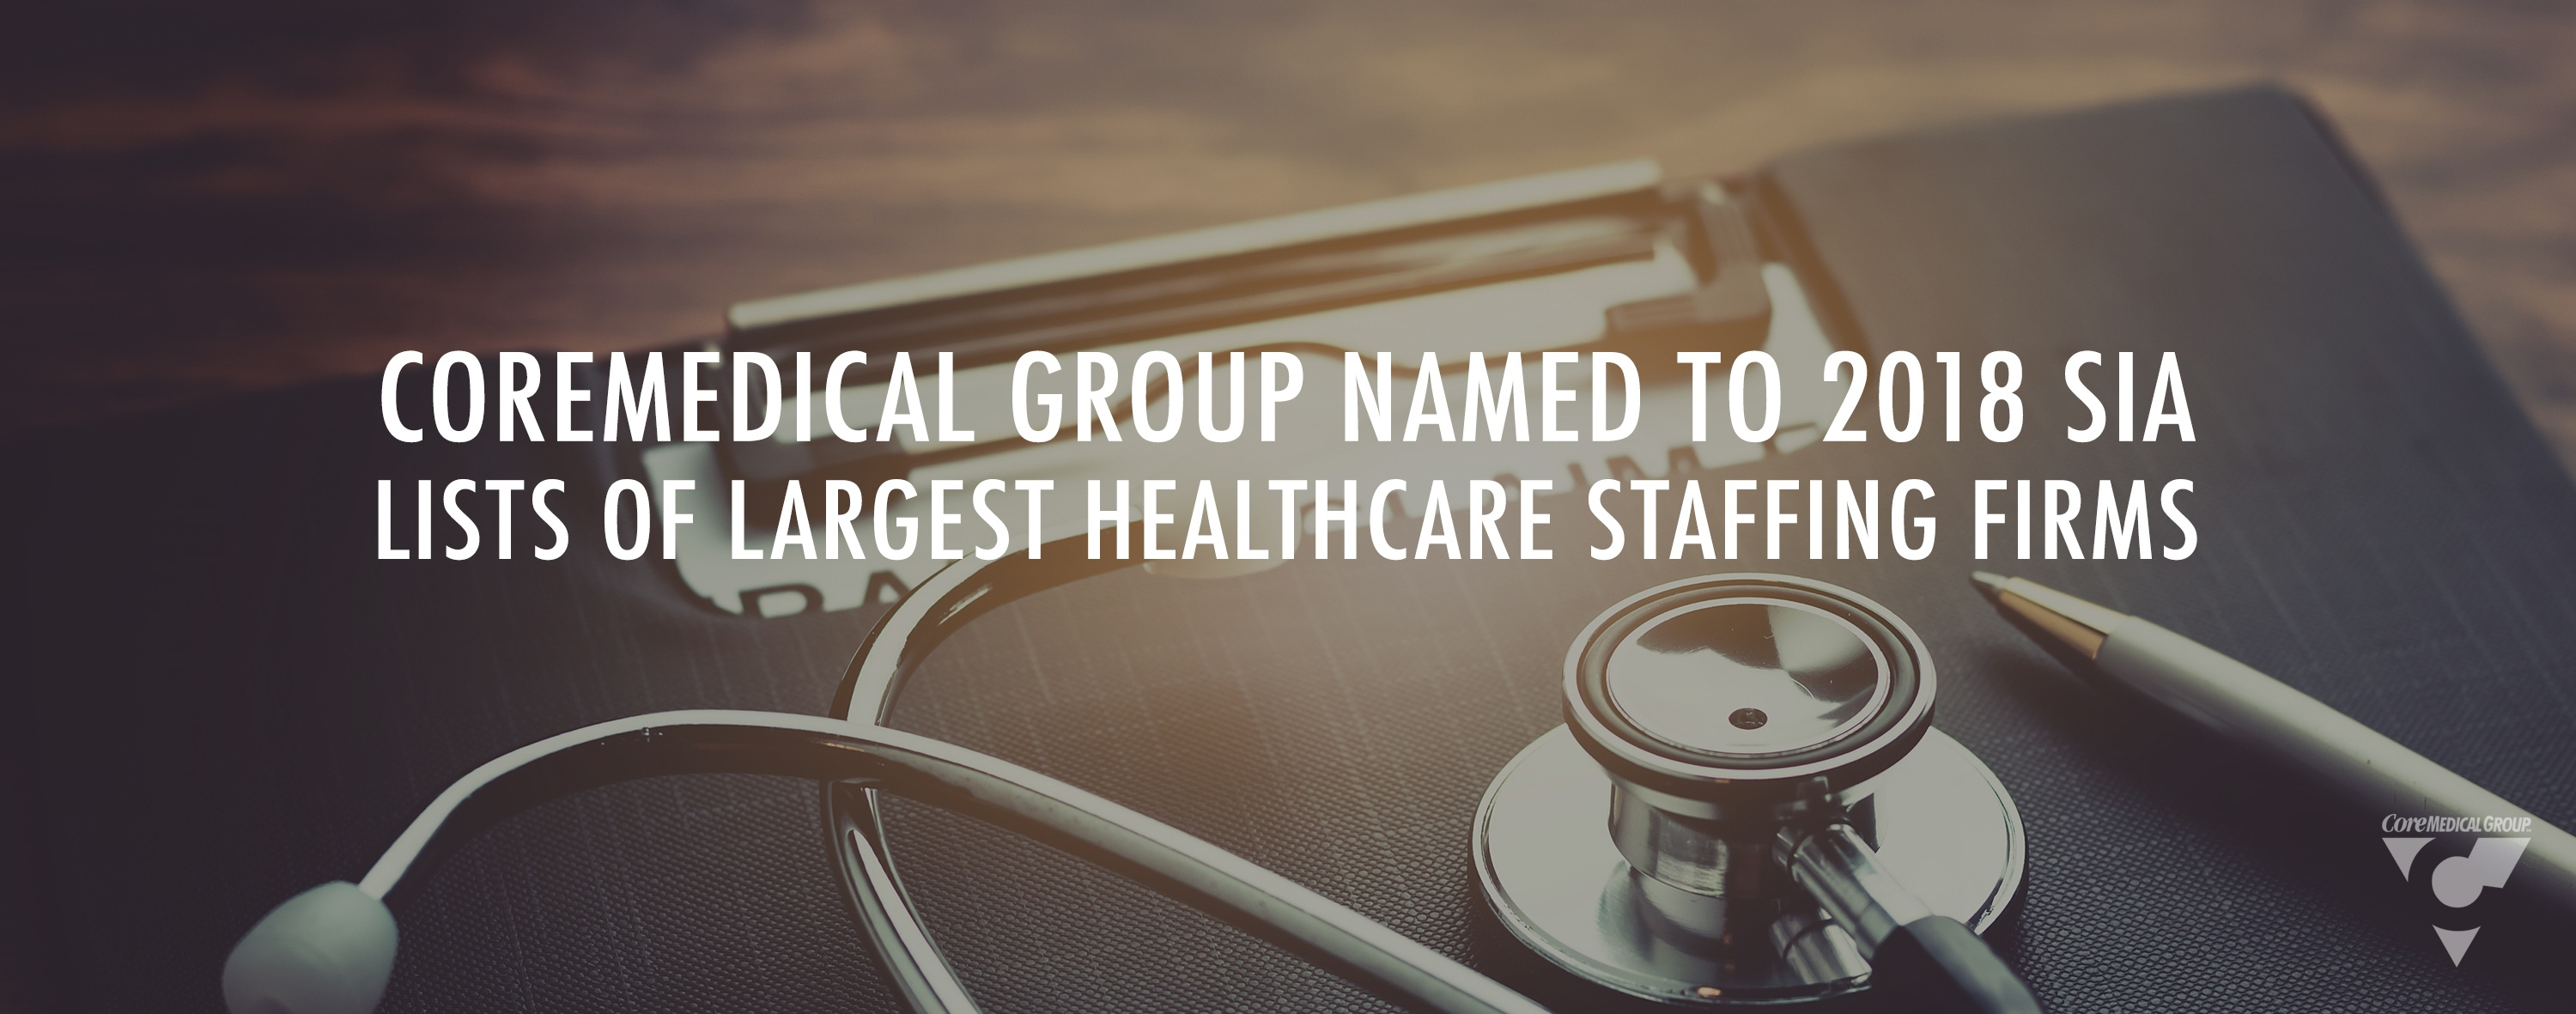 Core Medical Group Staffing Industry Analysts 2018